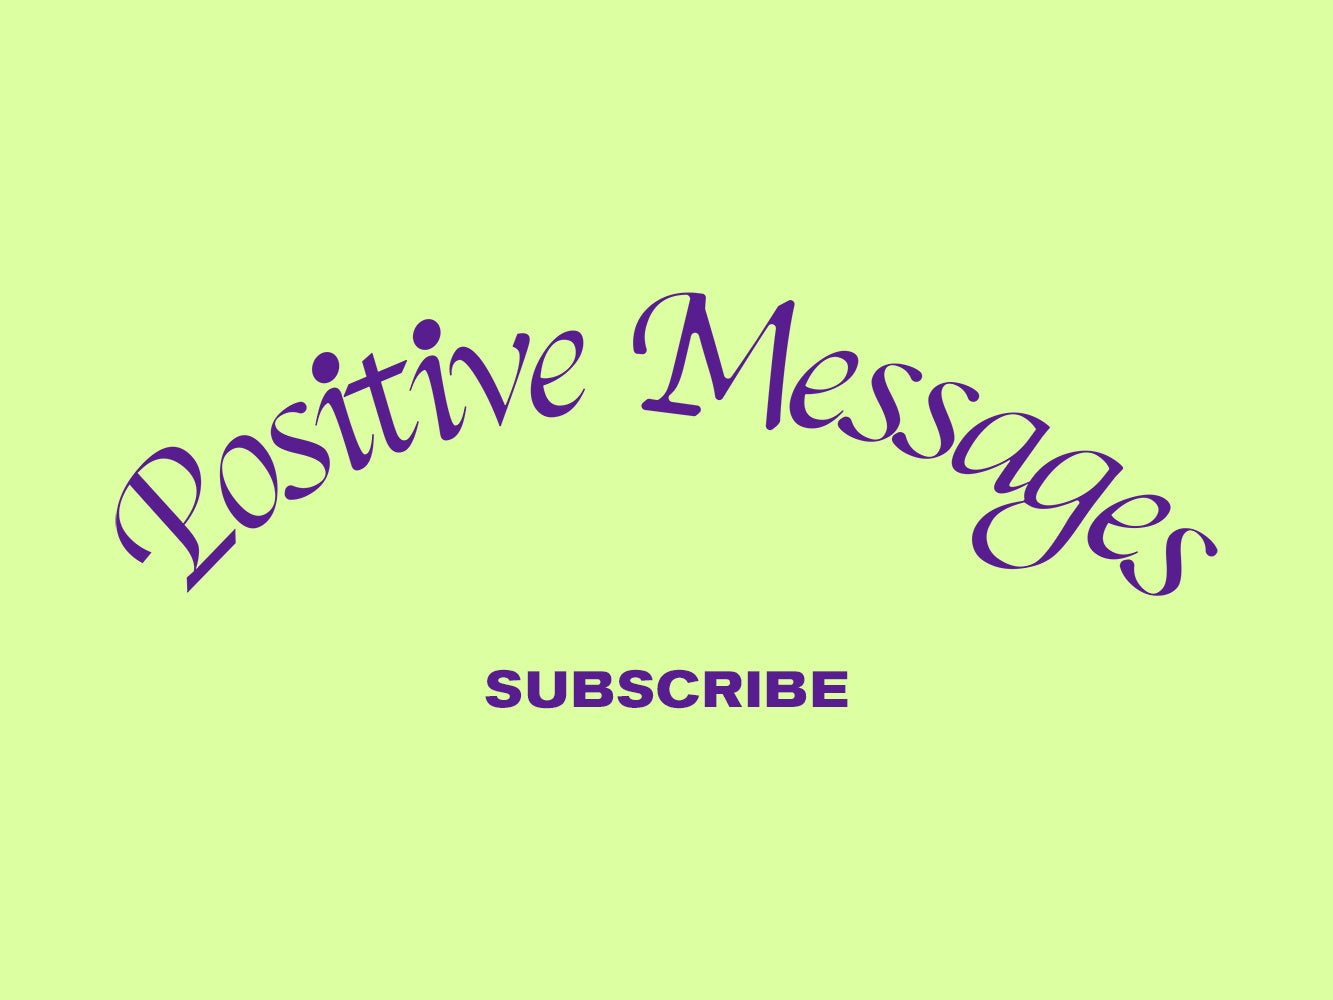 Subscribe to Positive Messages